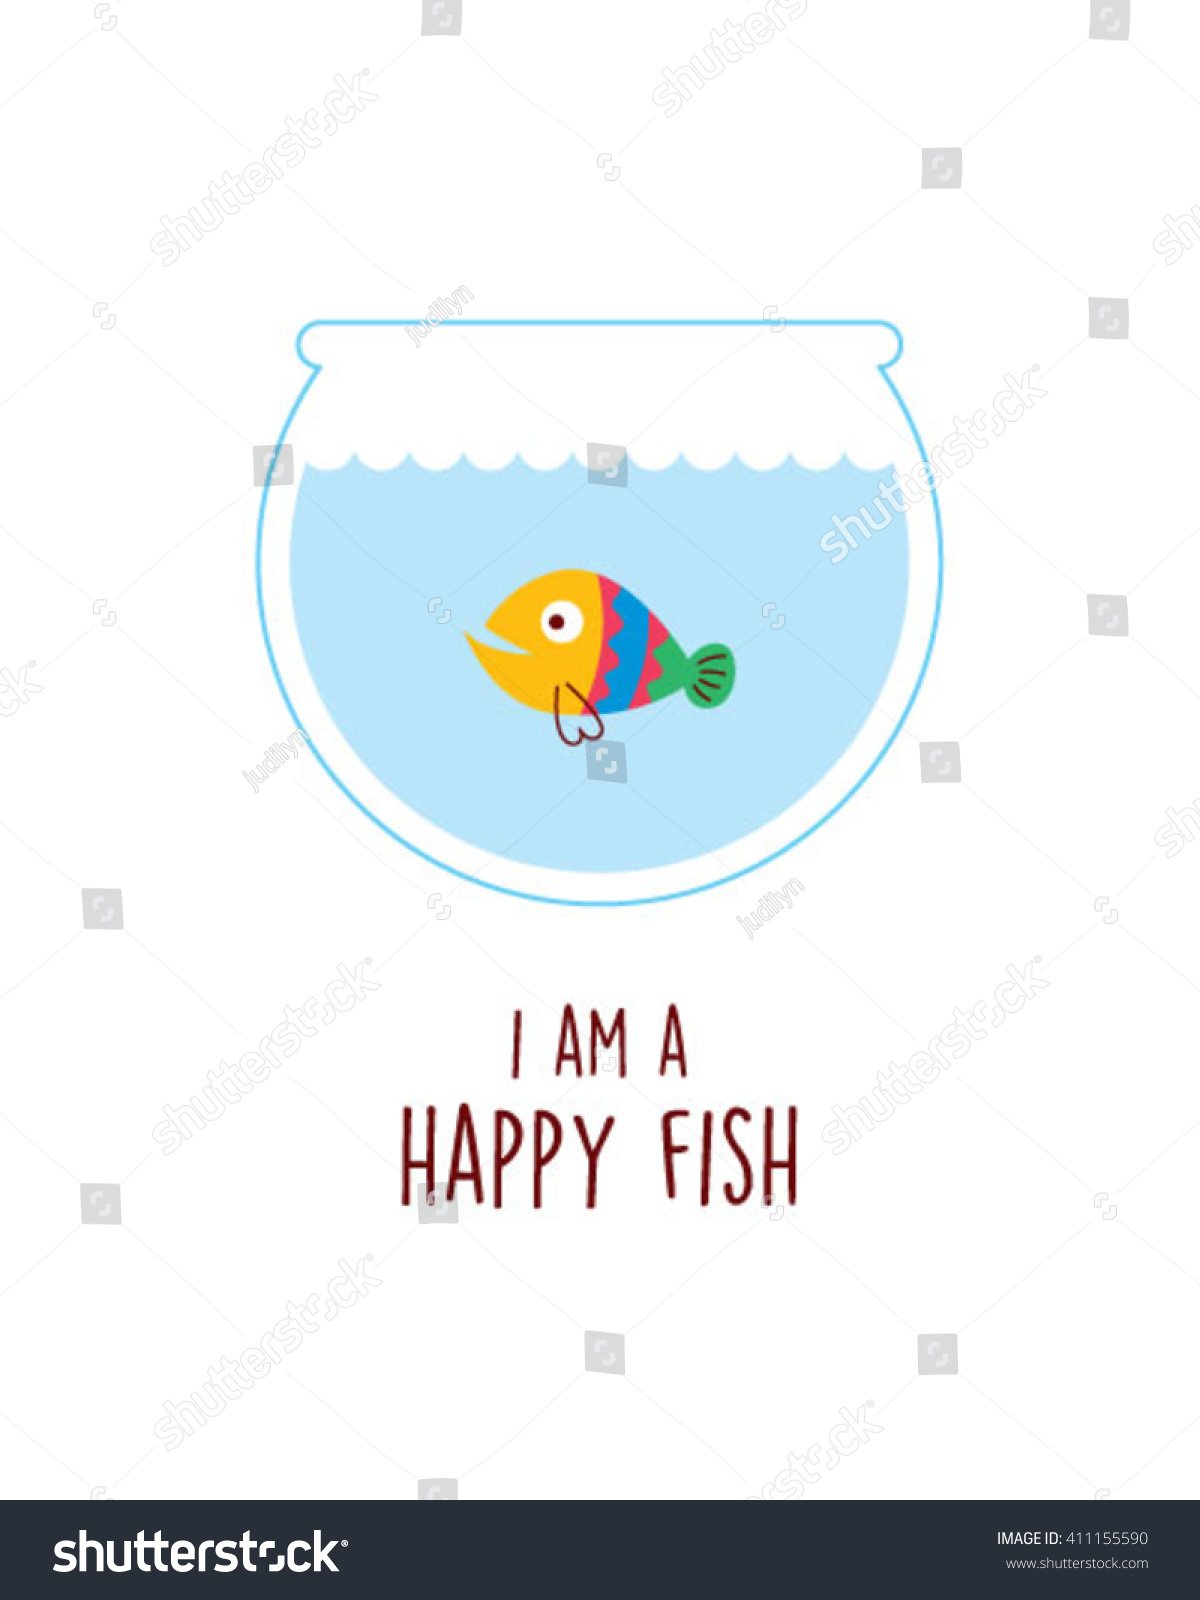 Happy fish vector stock vector 411155590 shutterstock for What kind of fish am i